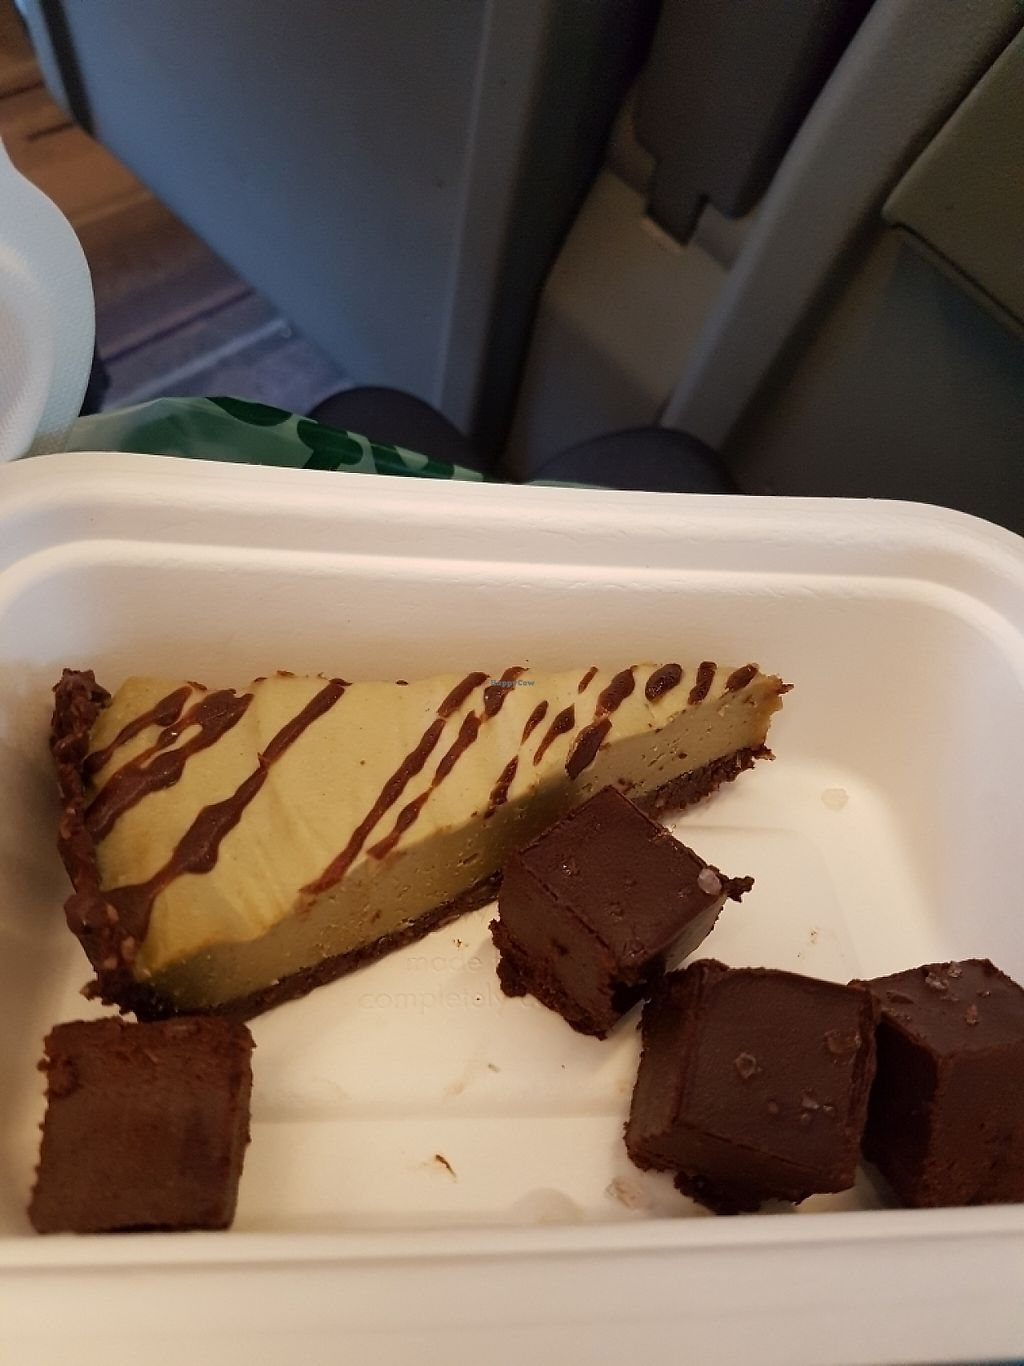 """Photo of Natural Healthy Foods Eatery  by <a href=""""/members/profile/MelanieStJohn"""">MelanieStJohn</a> <br/>salted caramel fudge; key lime pie <br/> June 4, 2017  - <a href='/contact/abuse/image/89849/265707'>Report</a>"""